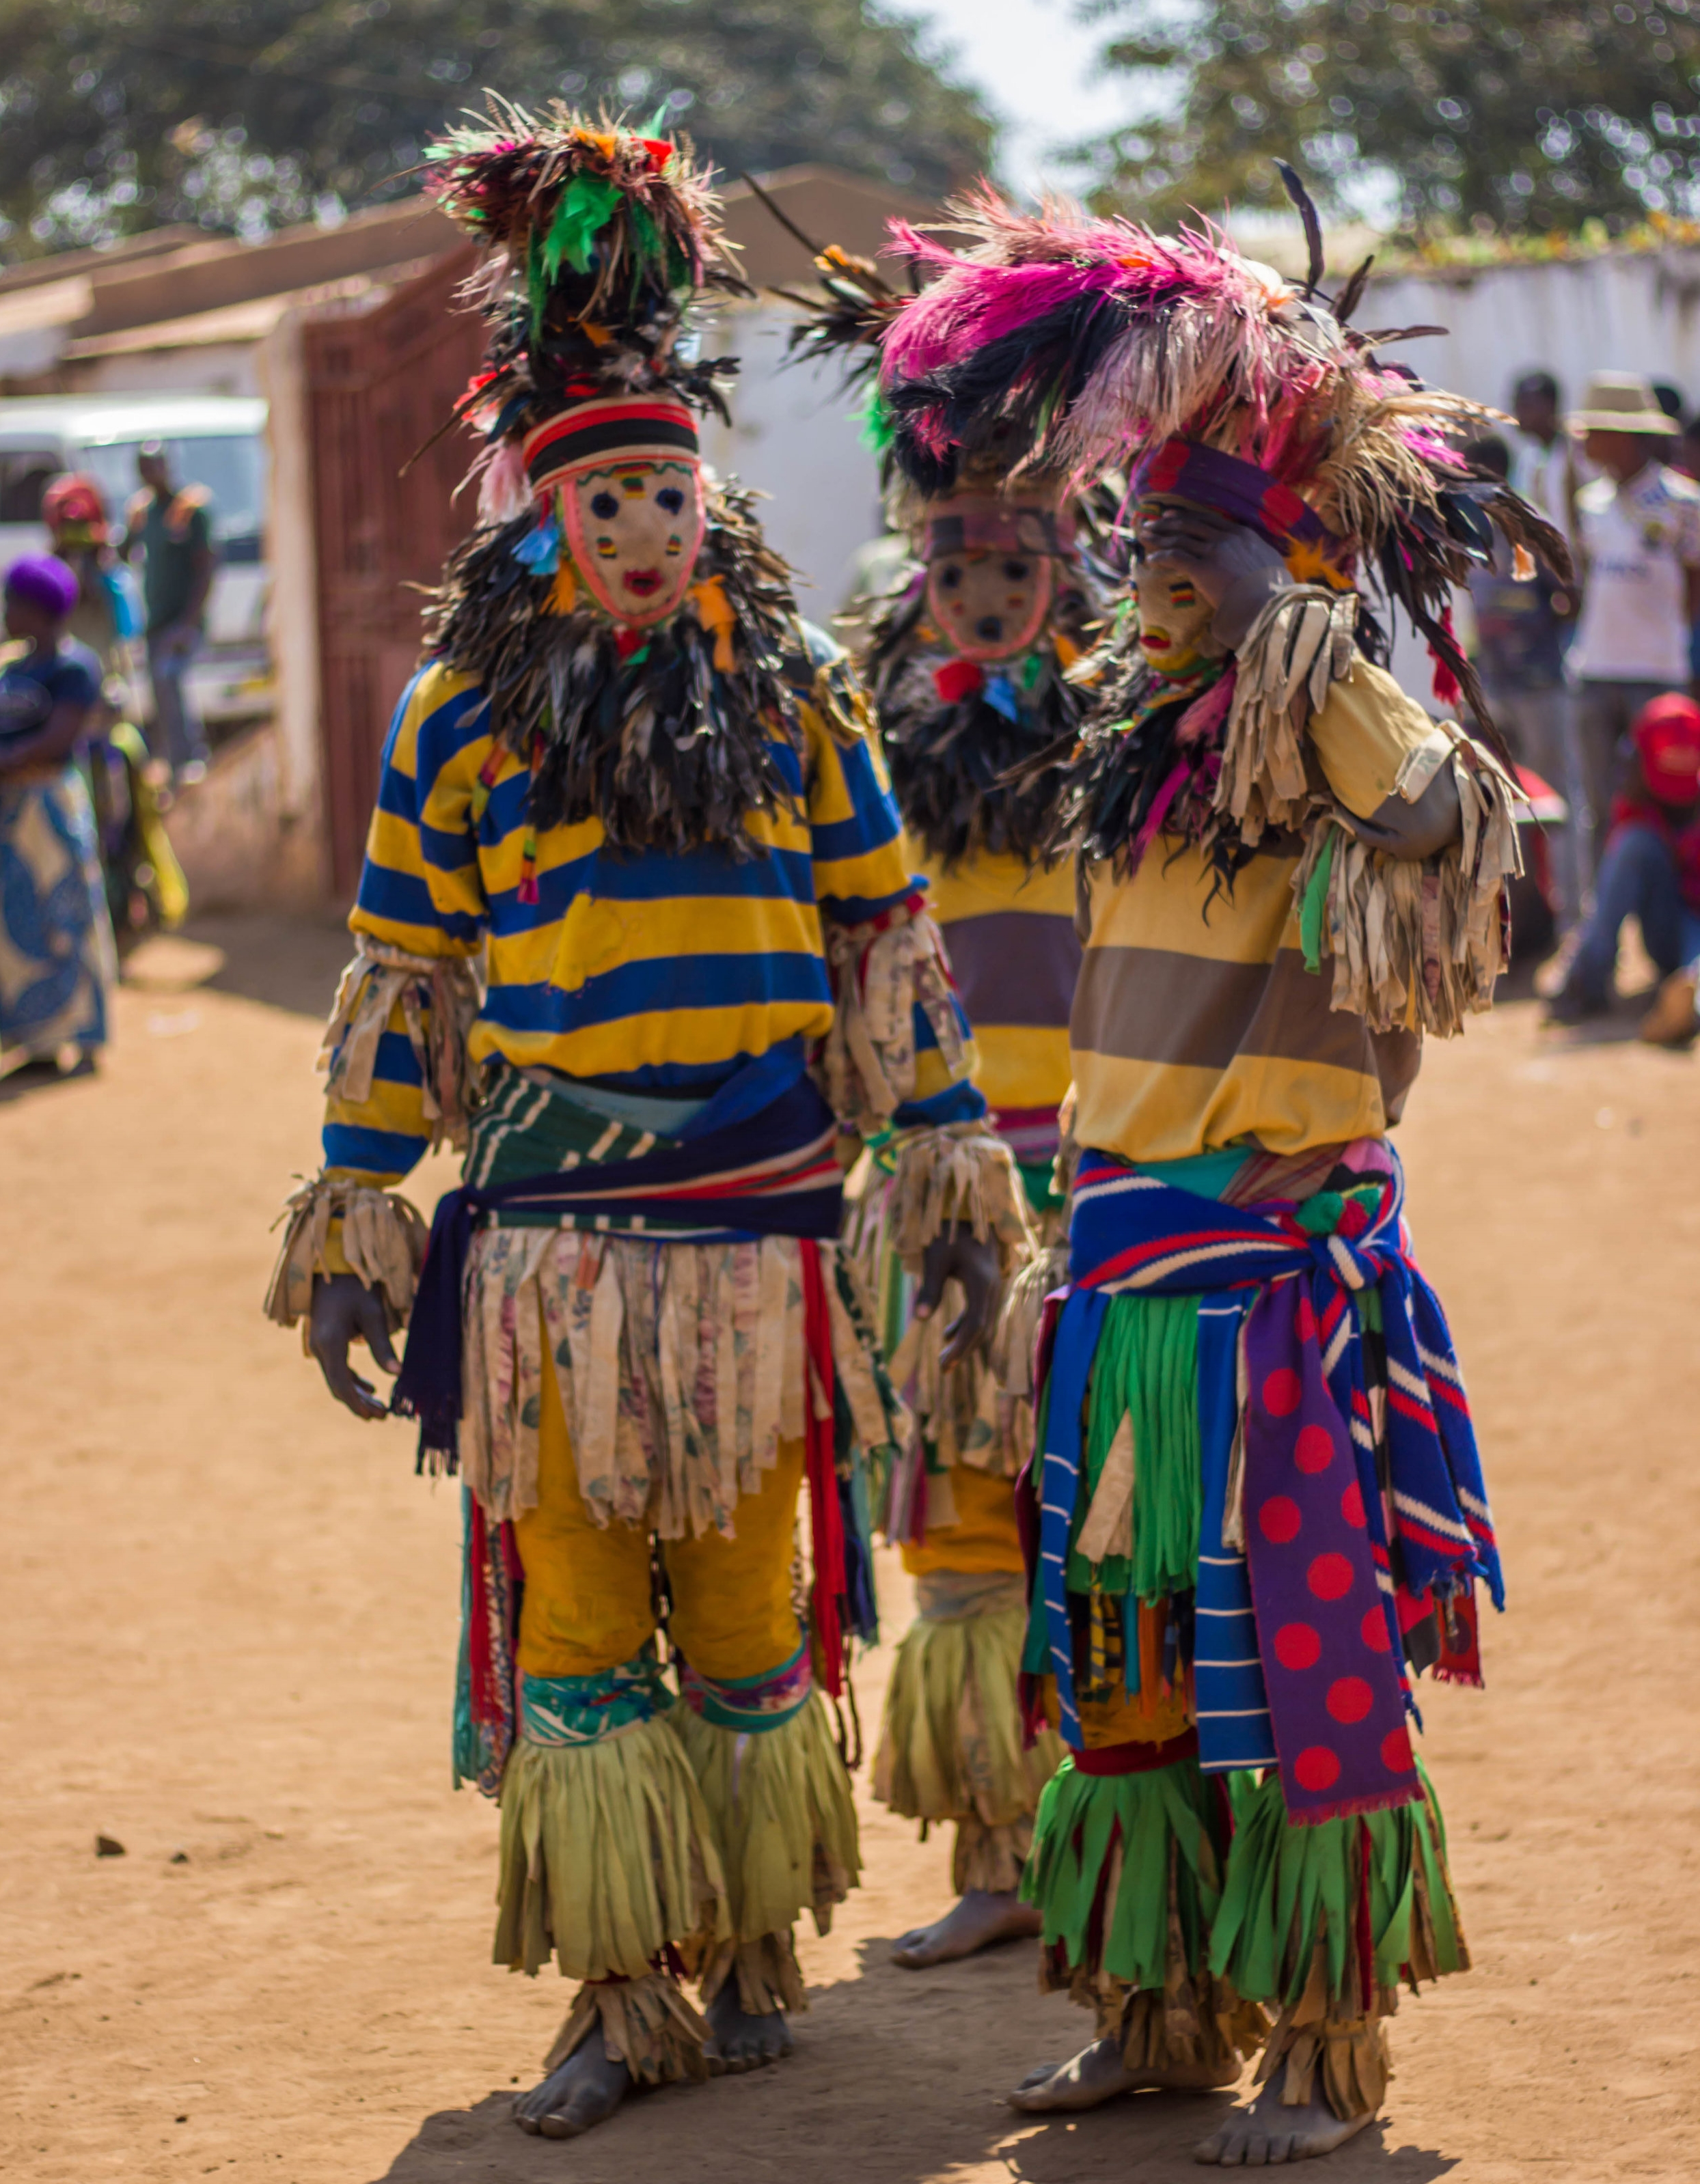 Nyau   Nyau is a secret society among the Chewa people, Malawi's largest tribal group, and are responsible for performing the  Gule Wamakulu  dance. The society was once banned by Christian missionaries though it survived and adapted, with some factions incorporating elements of Christianity into their ceremonies. Both men and women can join the society, though the initiation rights are different between genders, and the roles and rights of the society's members vary according to gender and seniority. The earliest known evidence of the society, a cave painting of a Nyau mask in Zaire, dates back to 992 B.C., making the society nearly 3,000 years old.